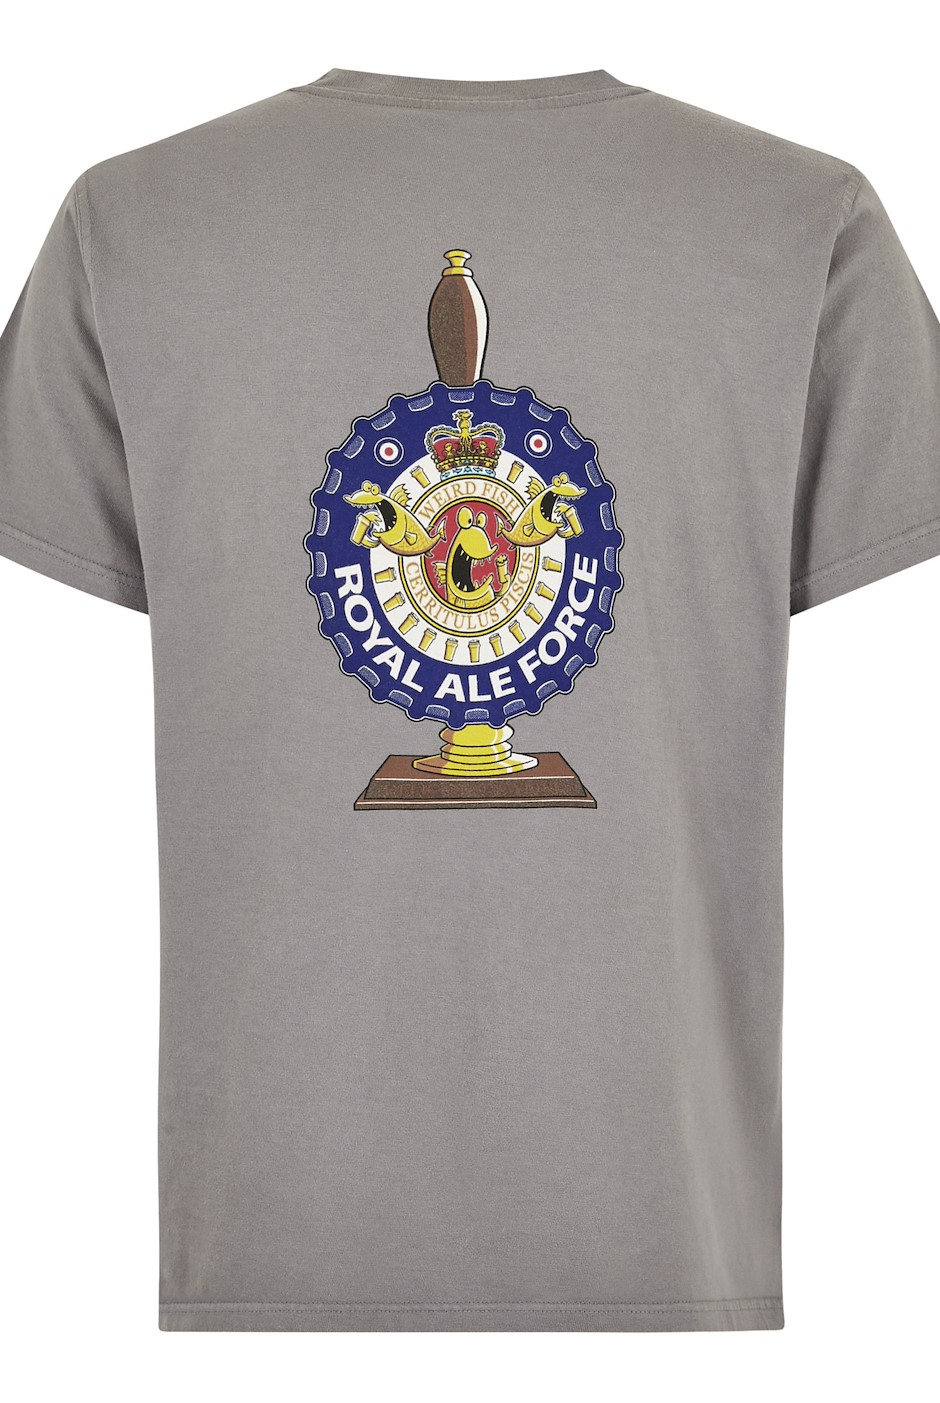 Royal Ale Force Artist T-Shirt Steel Grey